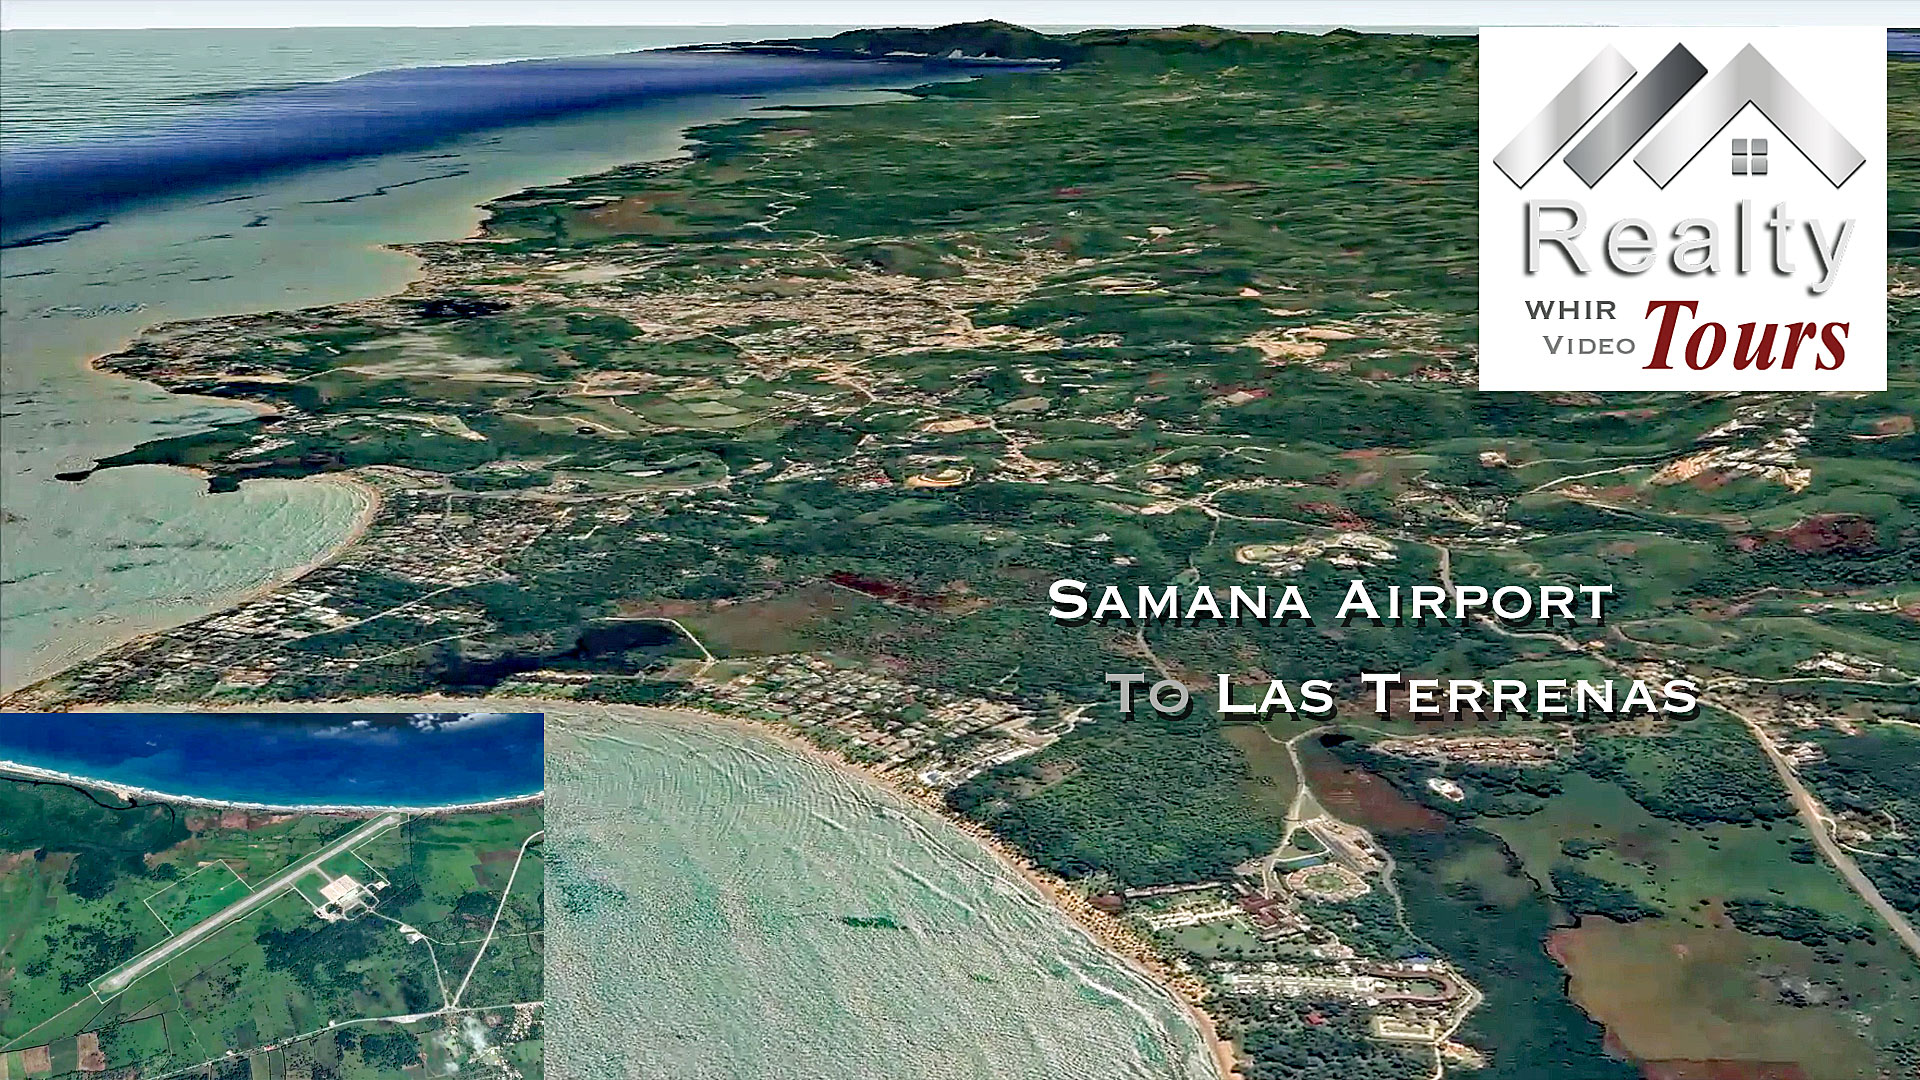 mdcy-lt-drive-start-samana-to-las-terrenas